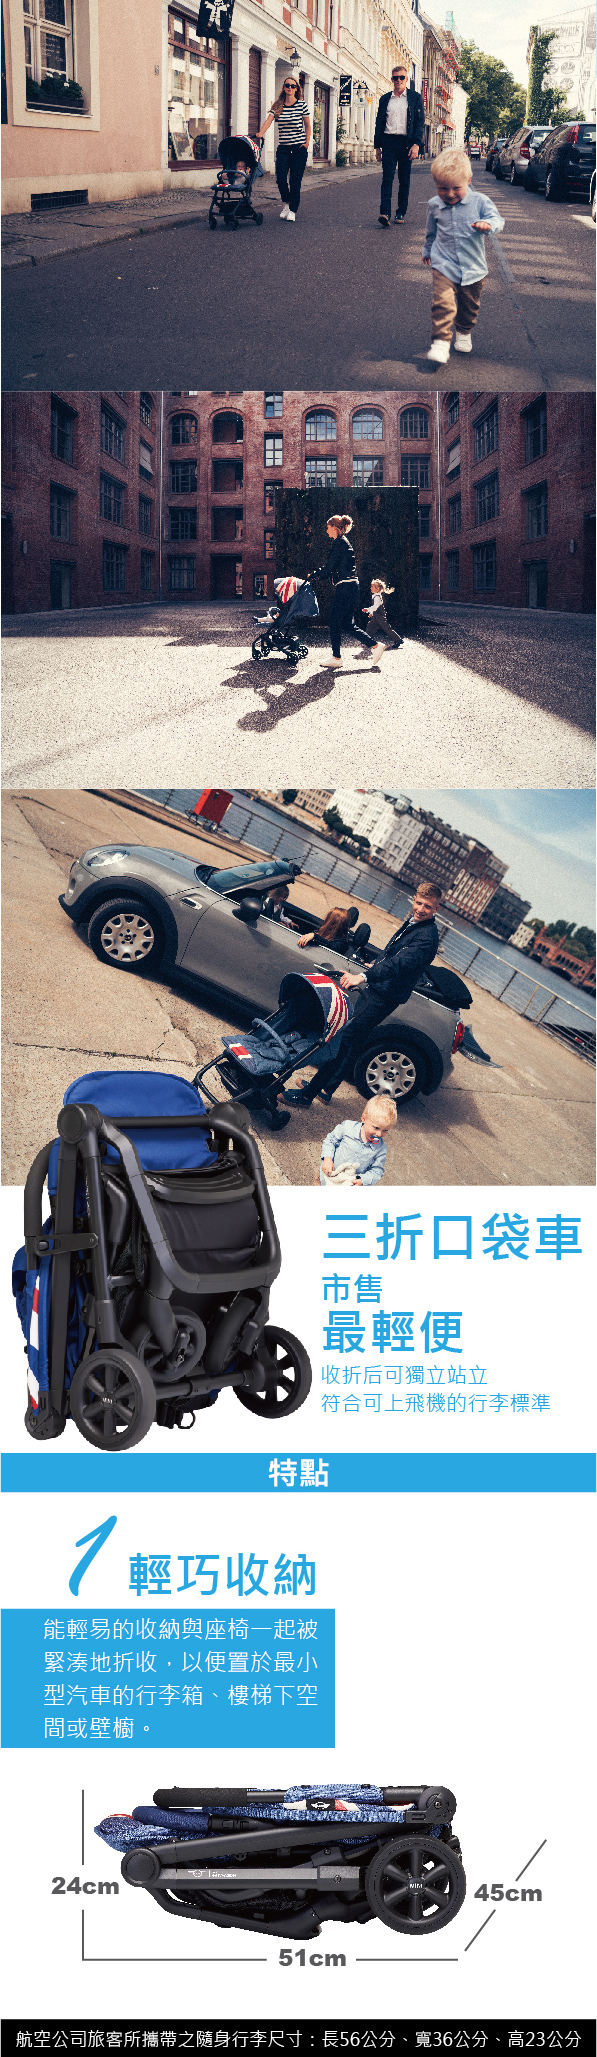 easywalker-mini-buggy-xs-info01